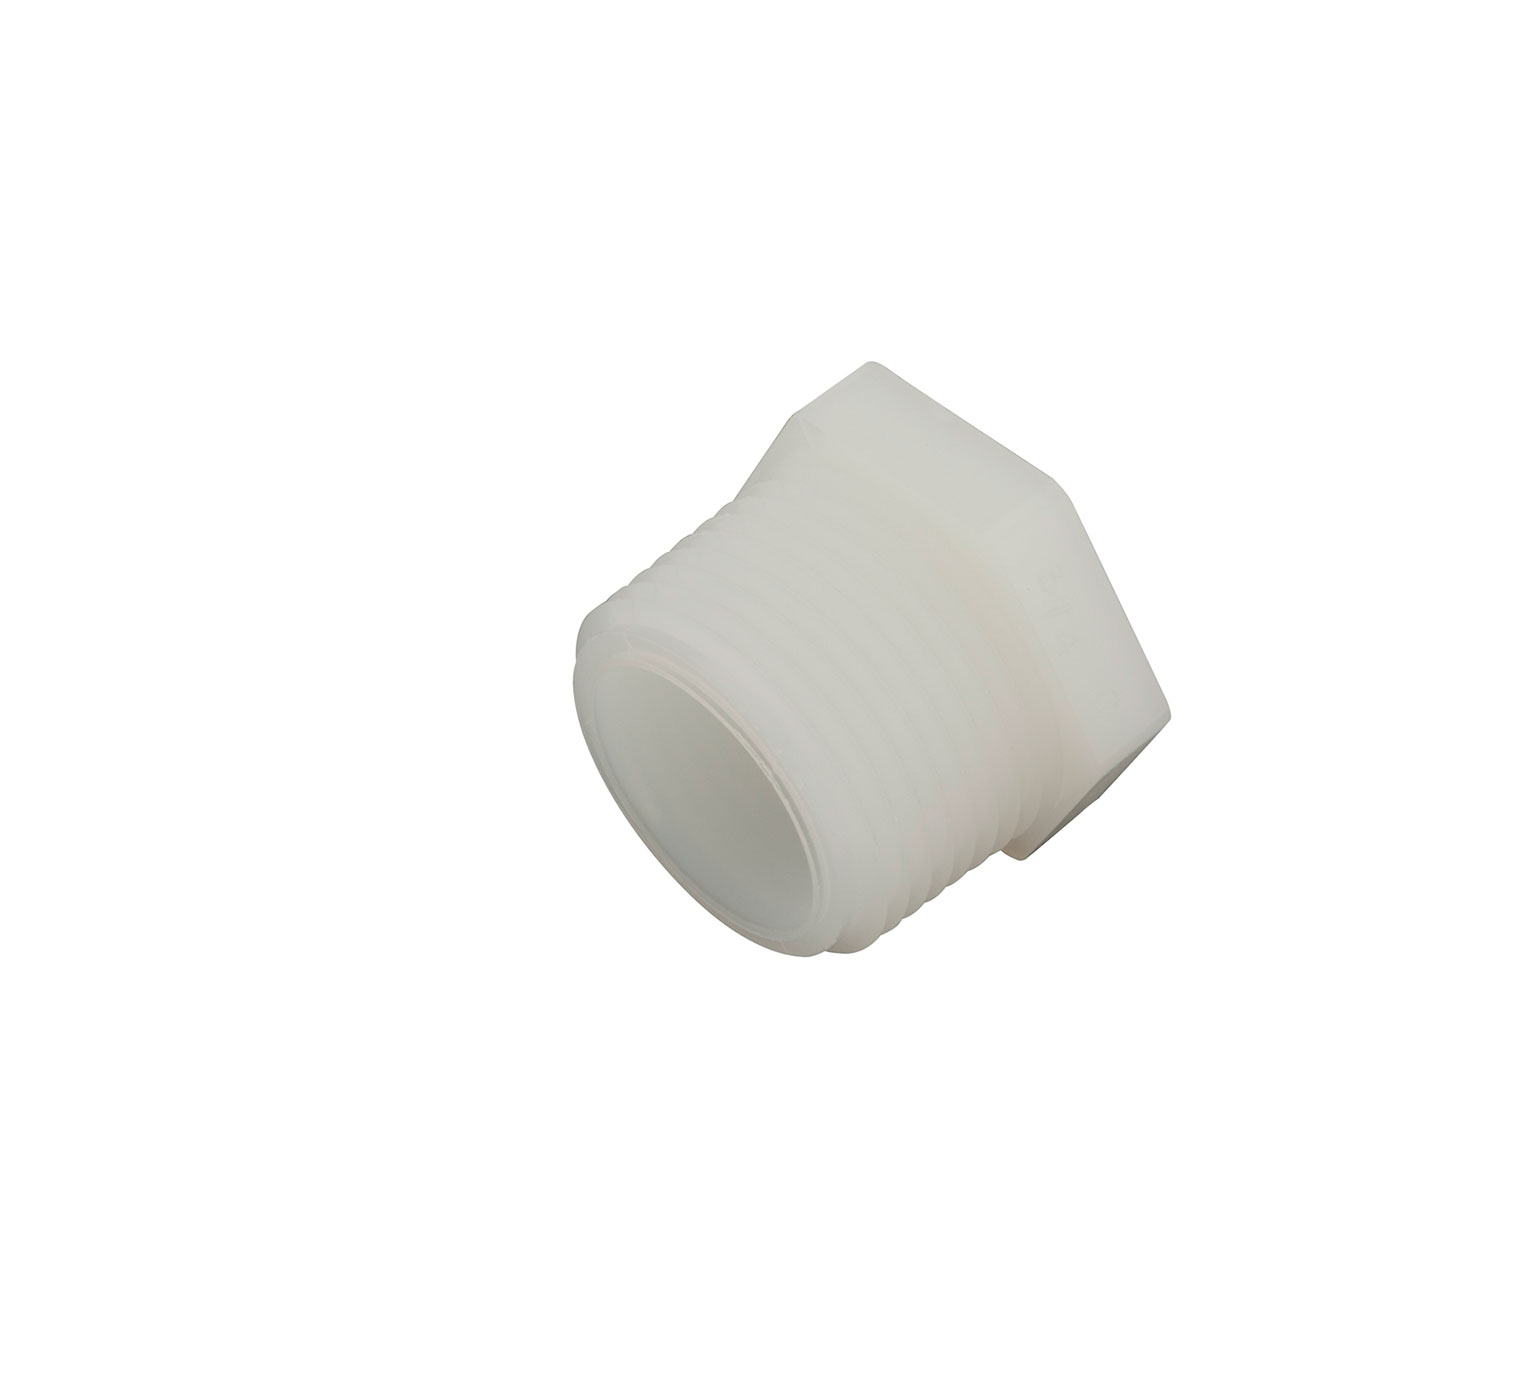 75611 Nylon Plug Fitting - 1.12 x 0.94 in alt 1